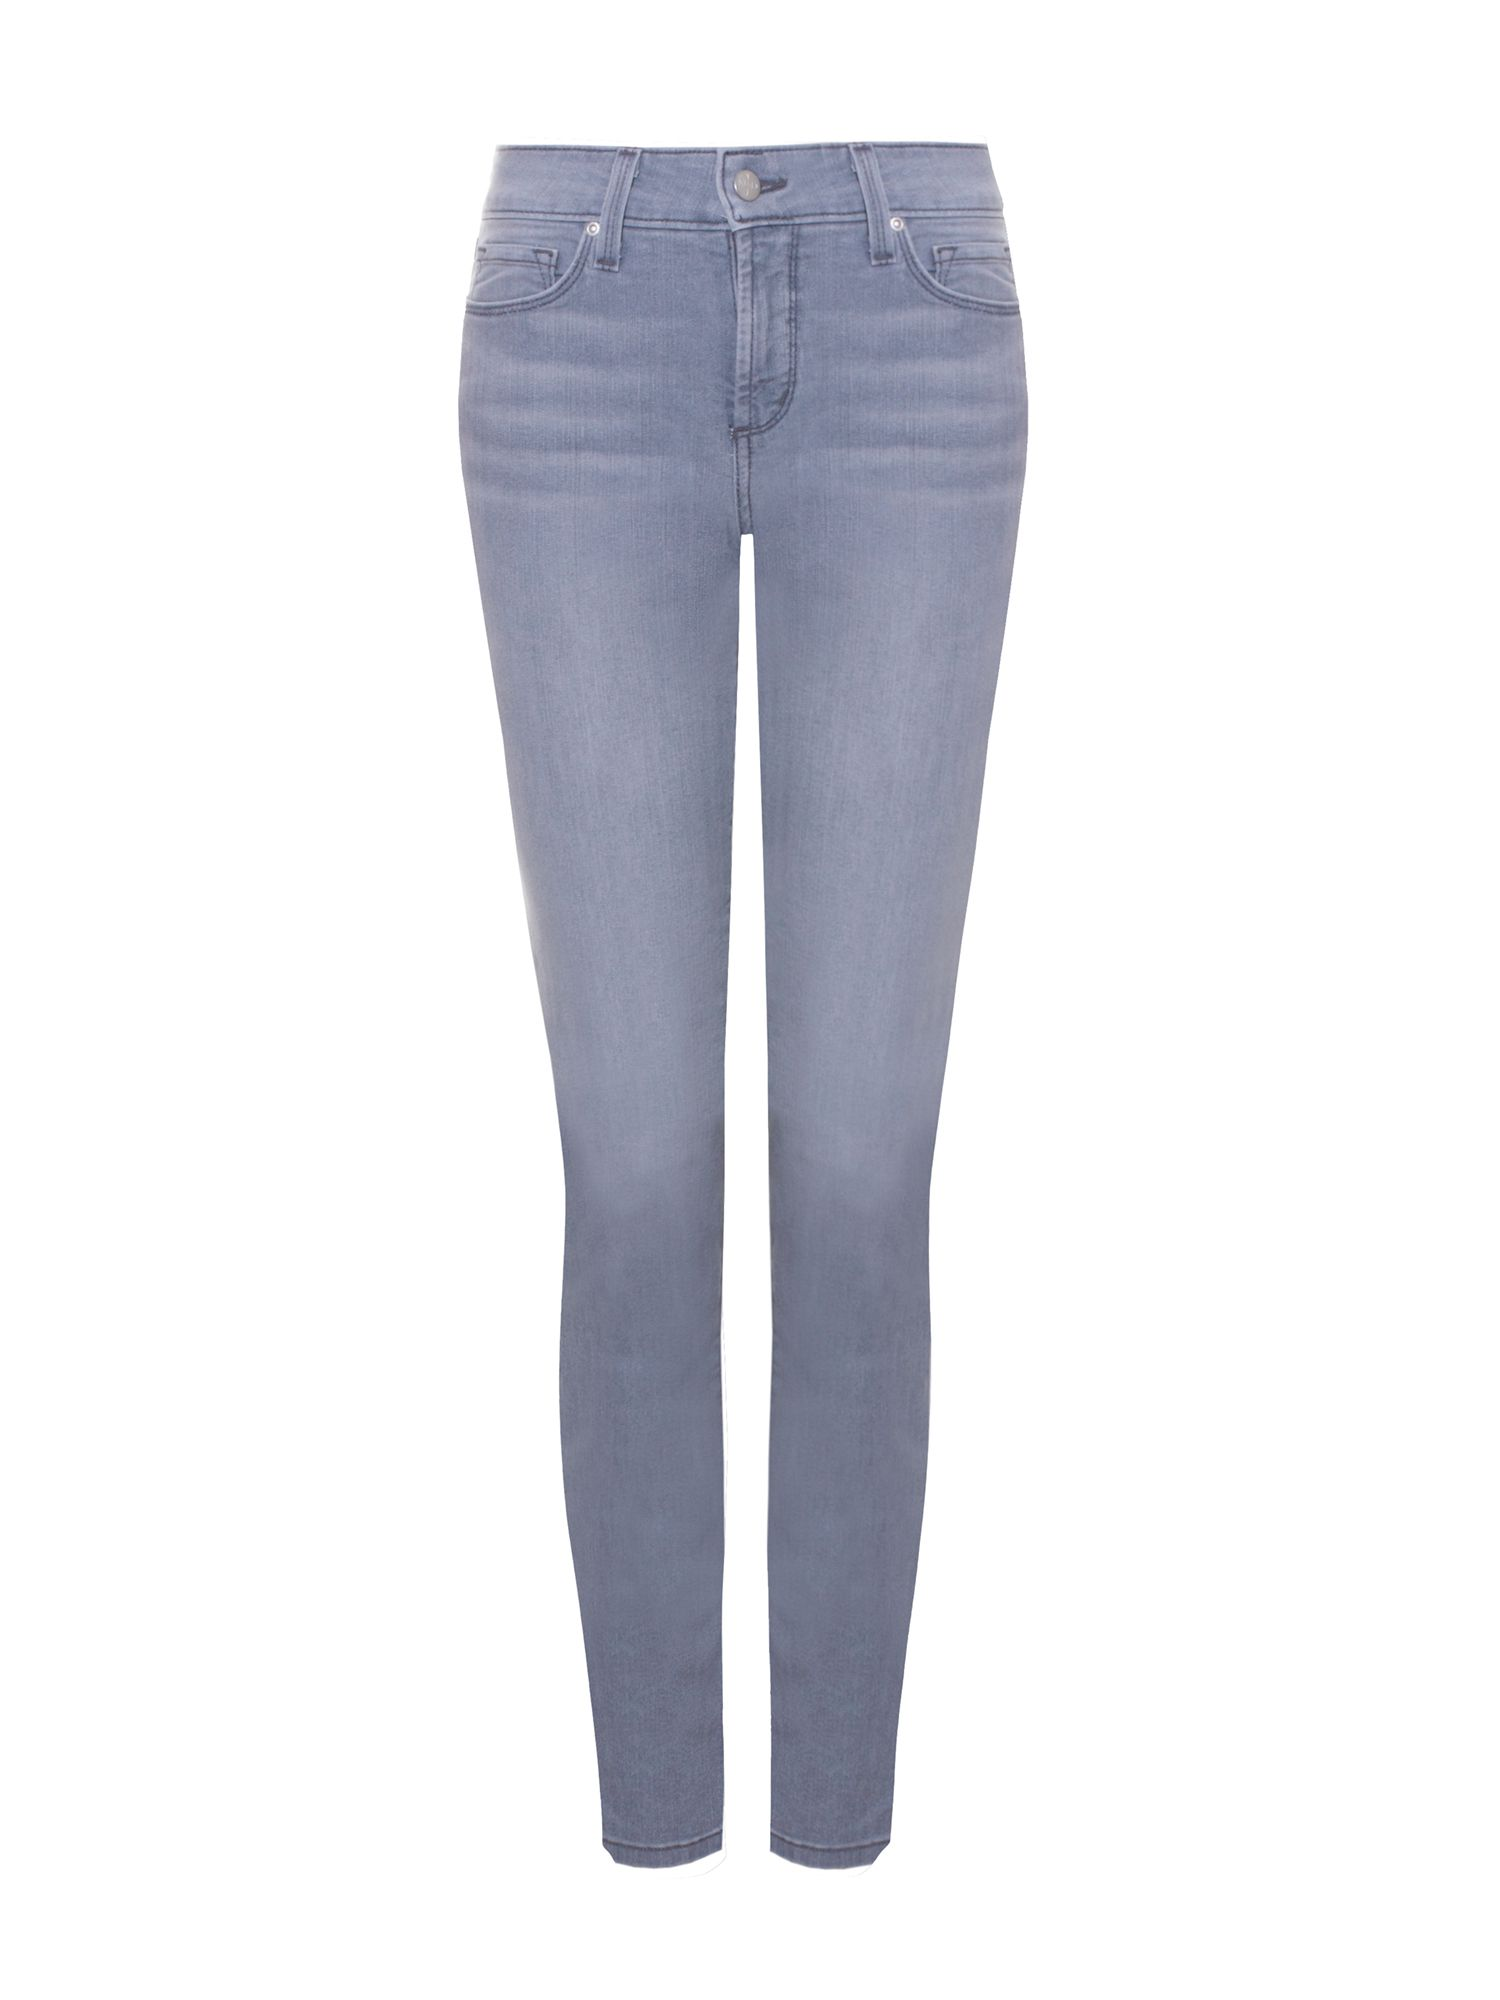 NYDJ Skinny In Lightweight Denim Petite Grey